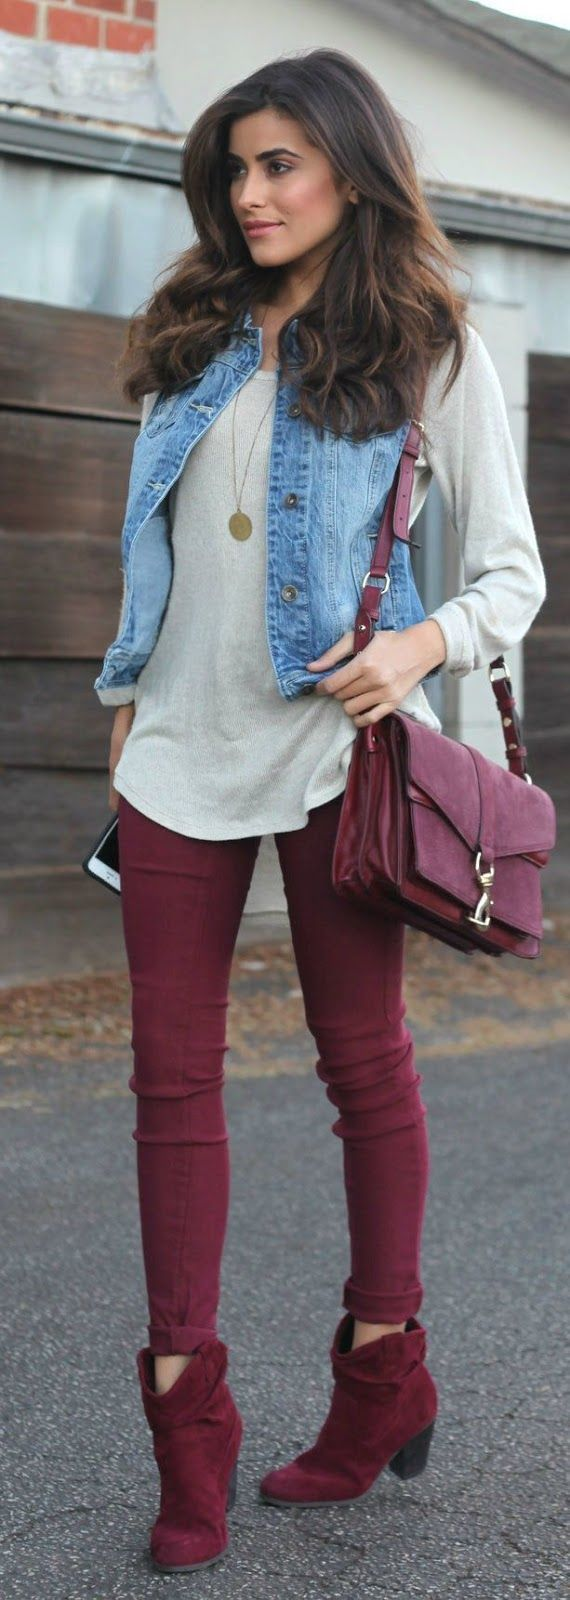 A blue denim vest and burgundy skinny jeans will showcase your sartorial self. Add dark red suede ankle boots to your look for an instant style upgrade.   Shop this look on Lookastic: https://lookastic.com/women/looks/vest-oversized-sweater-skinny-jeans/14404   — Grey Oversized Sweater  — Gold Pendant  — Blue Denim Vest  — Burgundy Leather Crossbody Bag  — Burgundy Skinny Jeans  — Burgundy Suede Ankle Boots